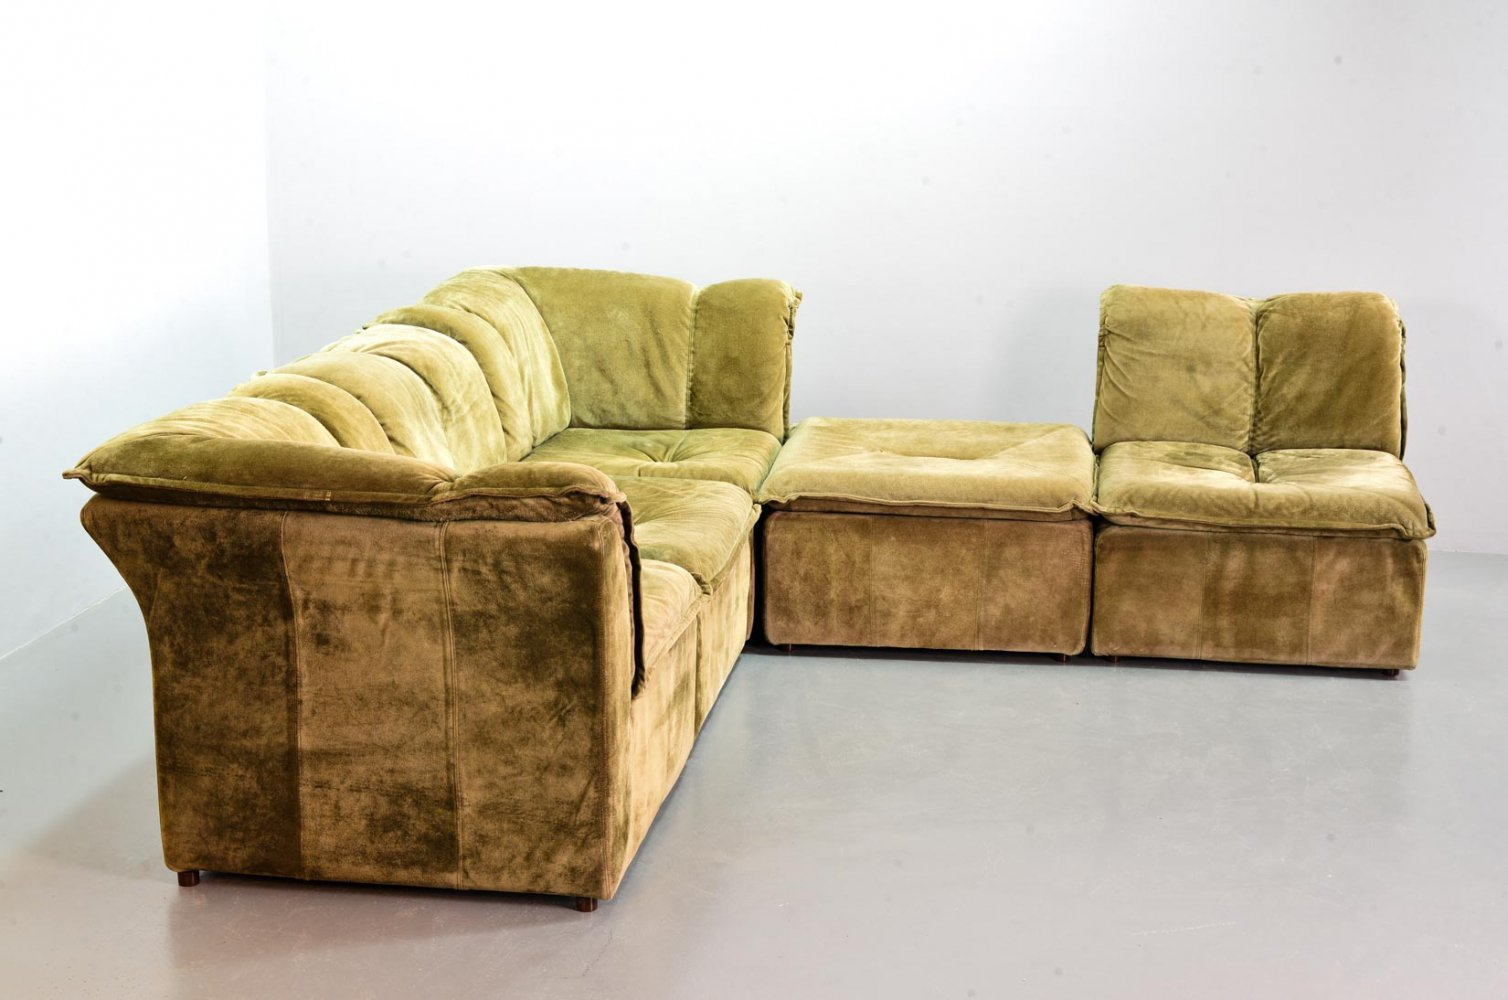 Laauser Moss Green Nubuck Leather Modular Patchwork Sofa with 5 Elements, 1970s